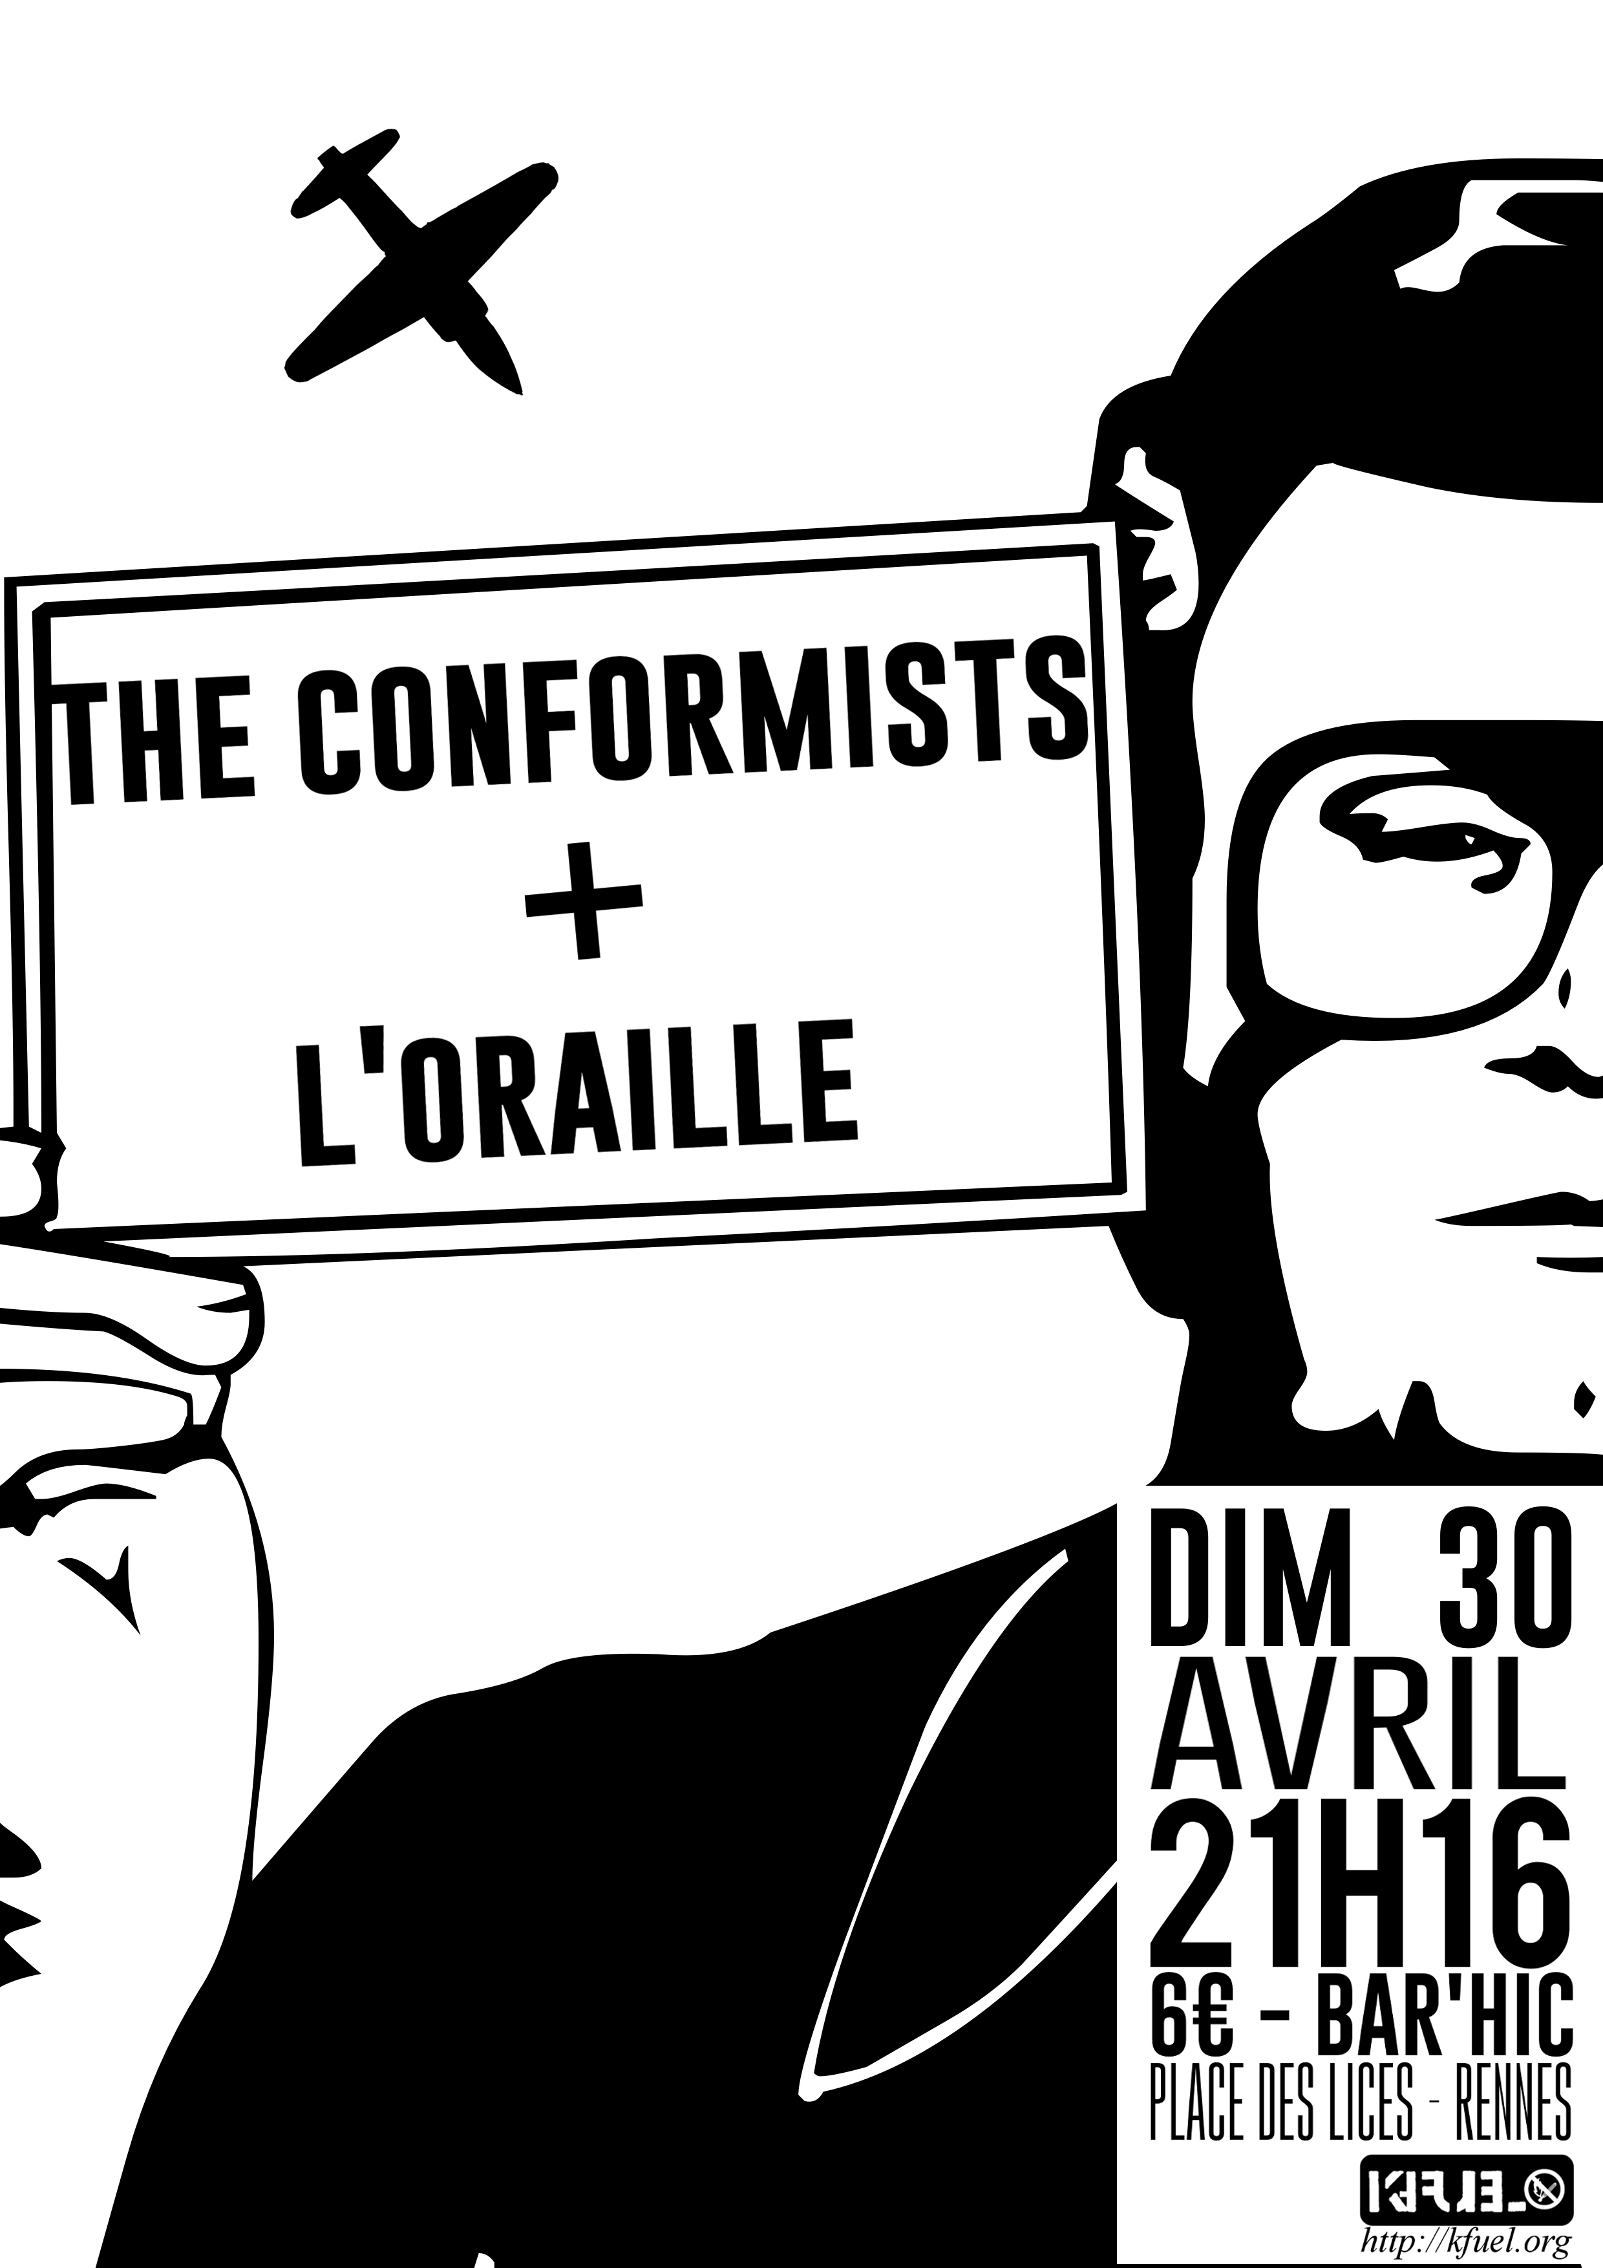 CONFORMISTS_LORAILLE